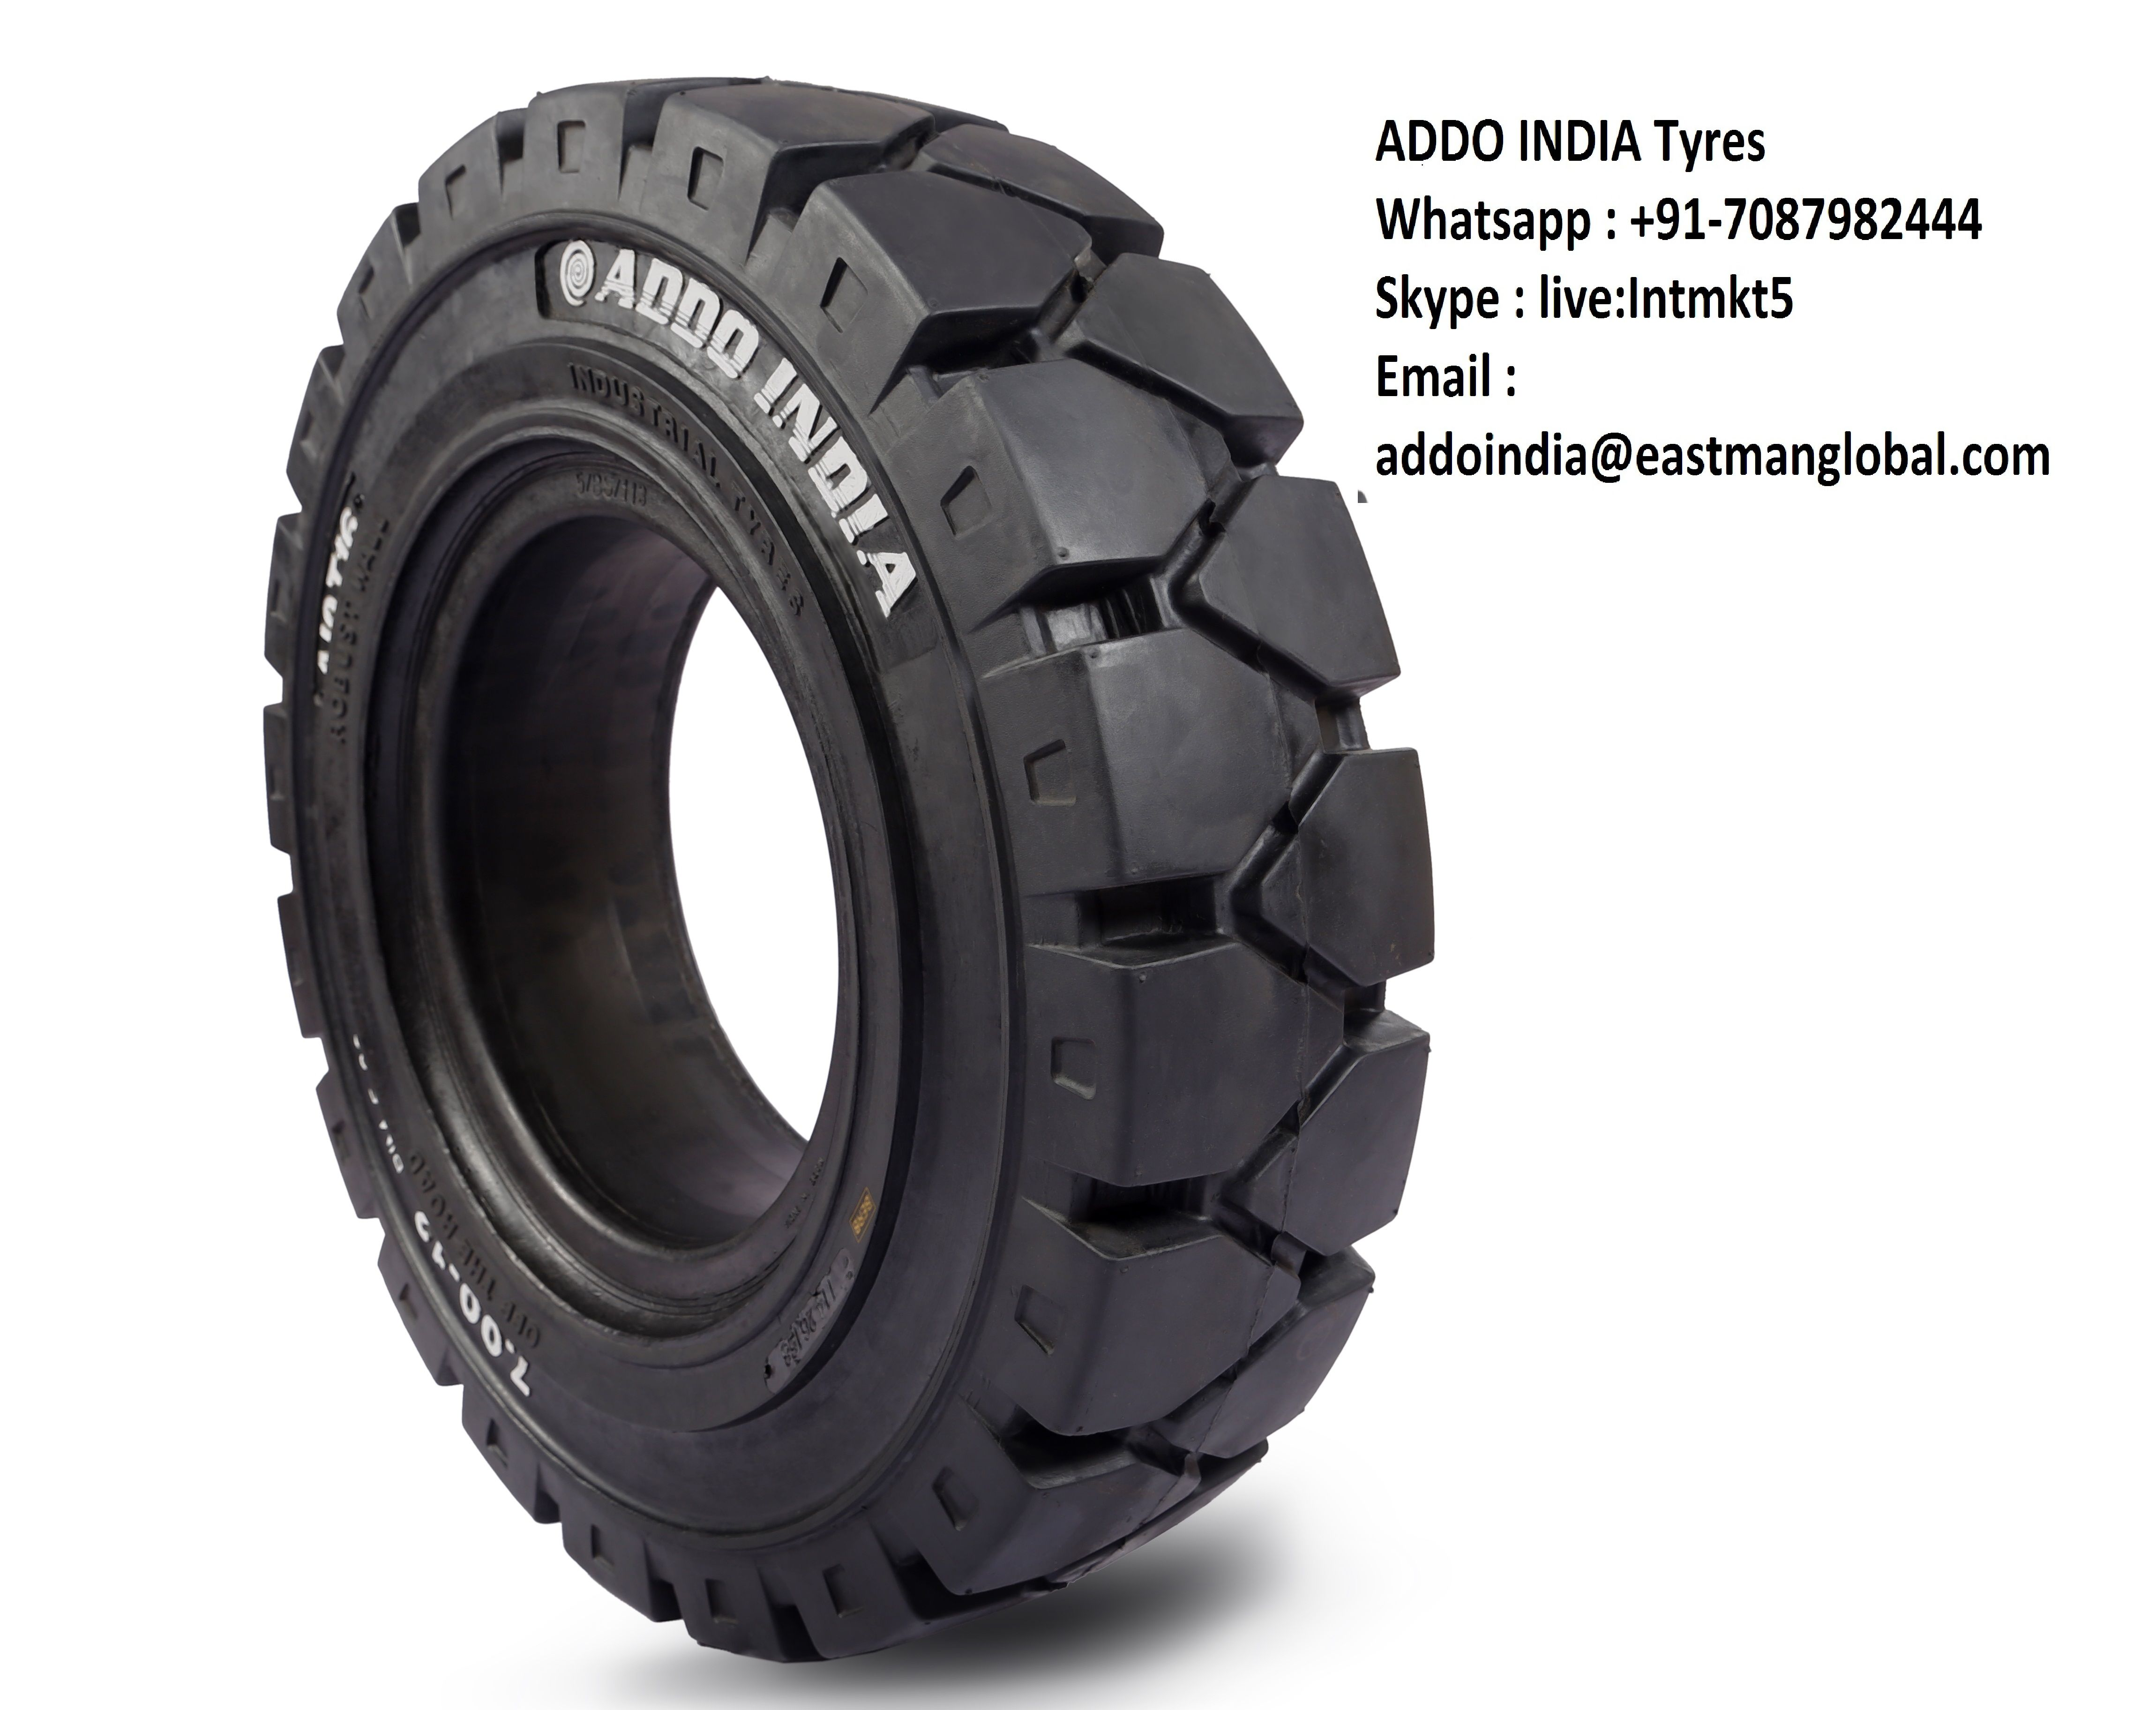 Pin By Prince Marwaha On Addo India Tyres Tire Truck Tyres Truck Lights